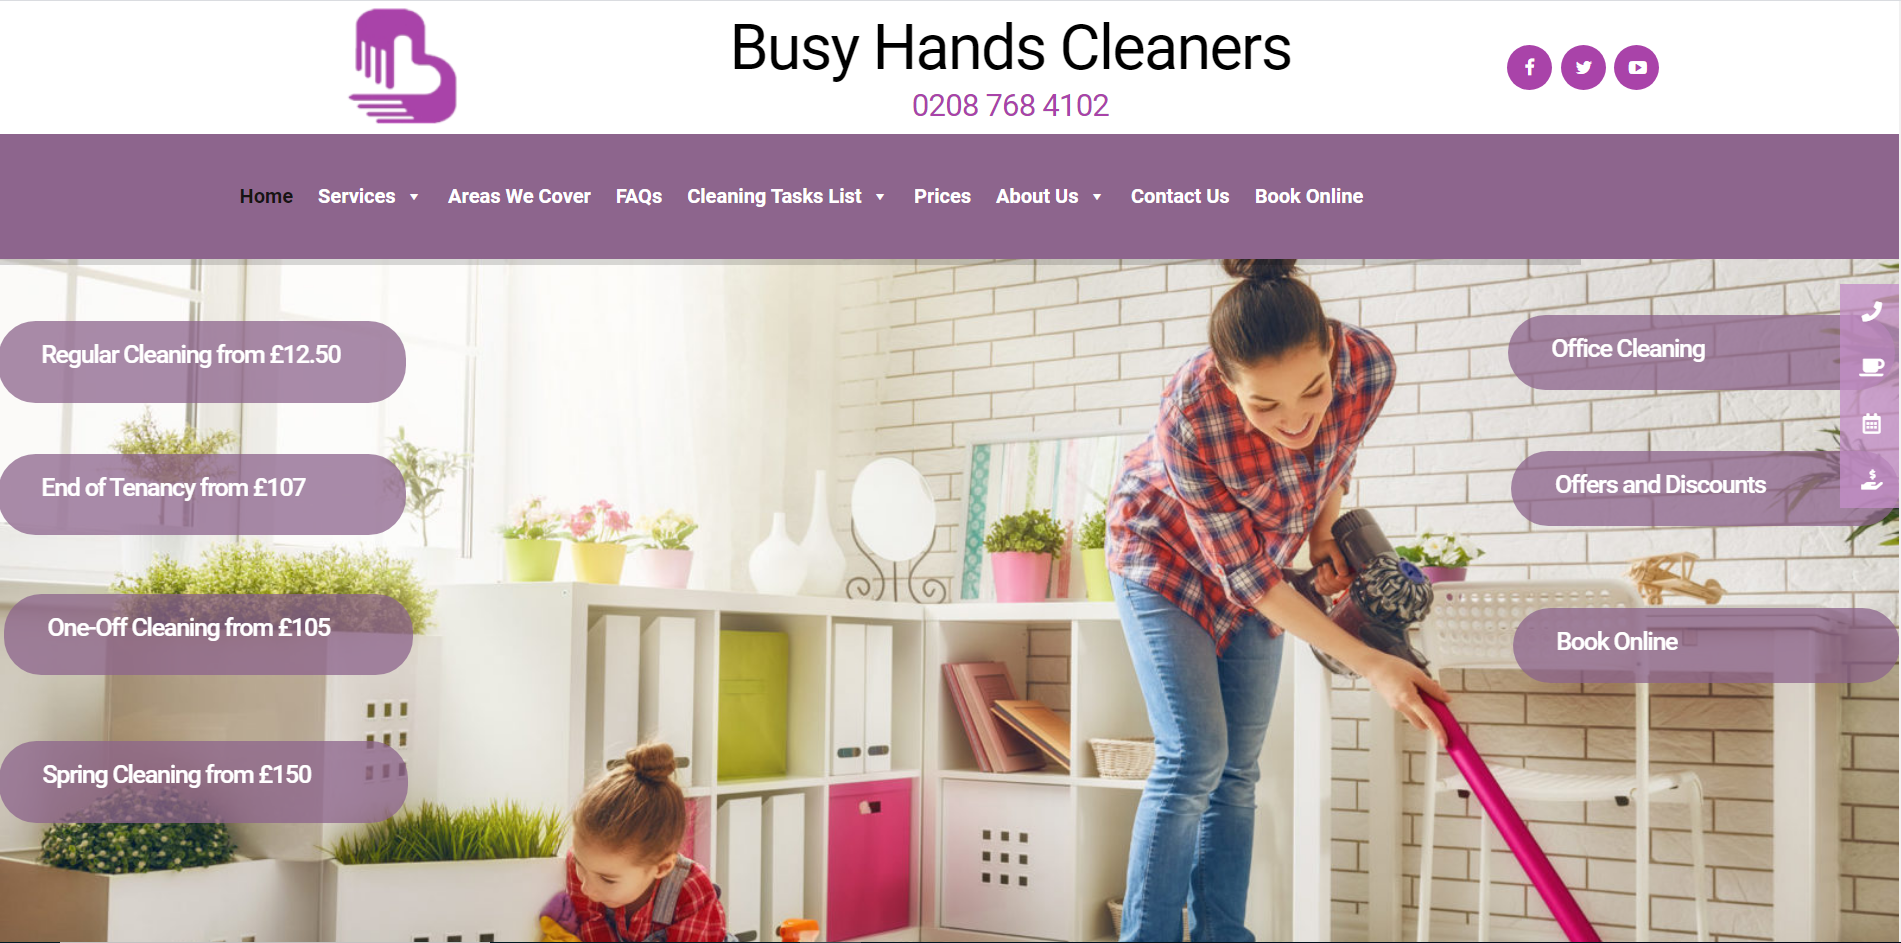 Busy Hands Cleaners